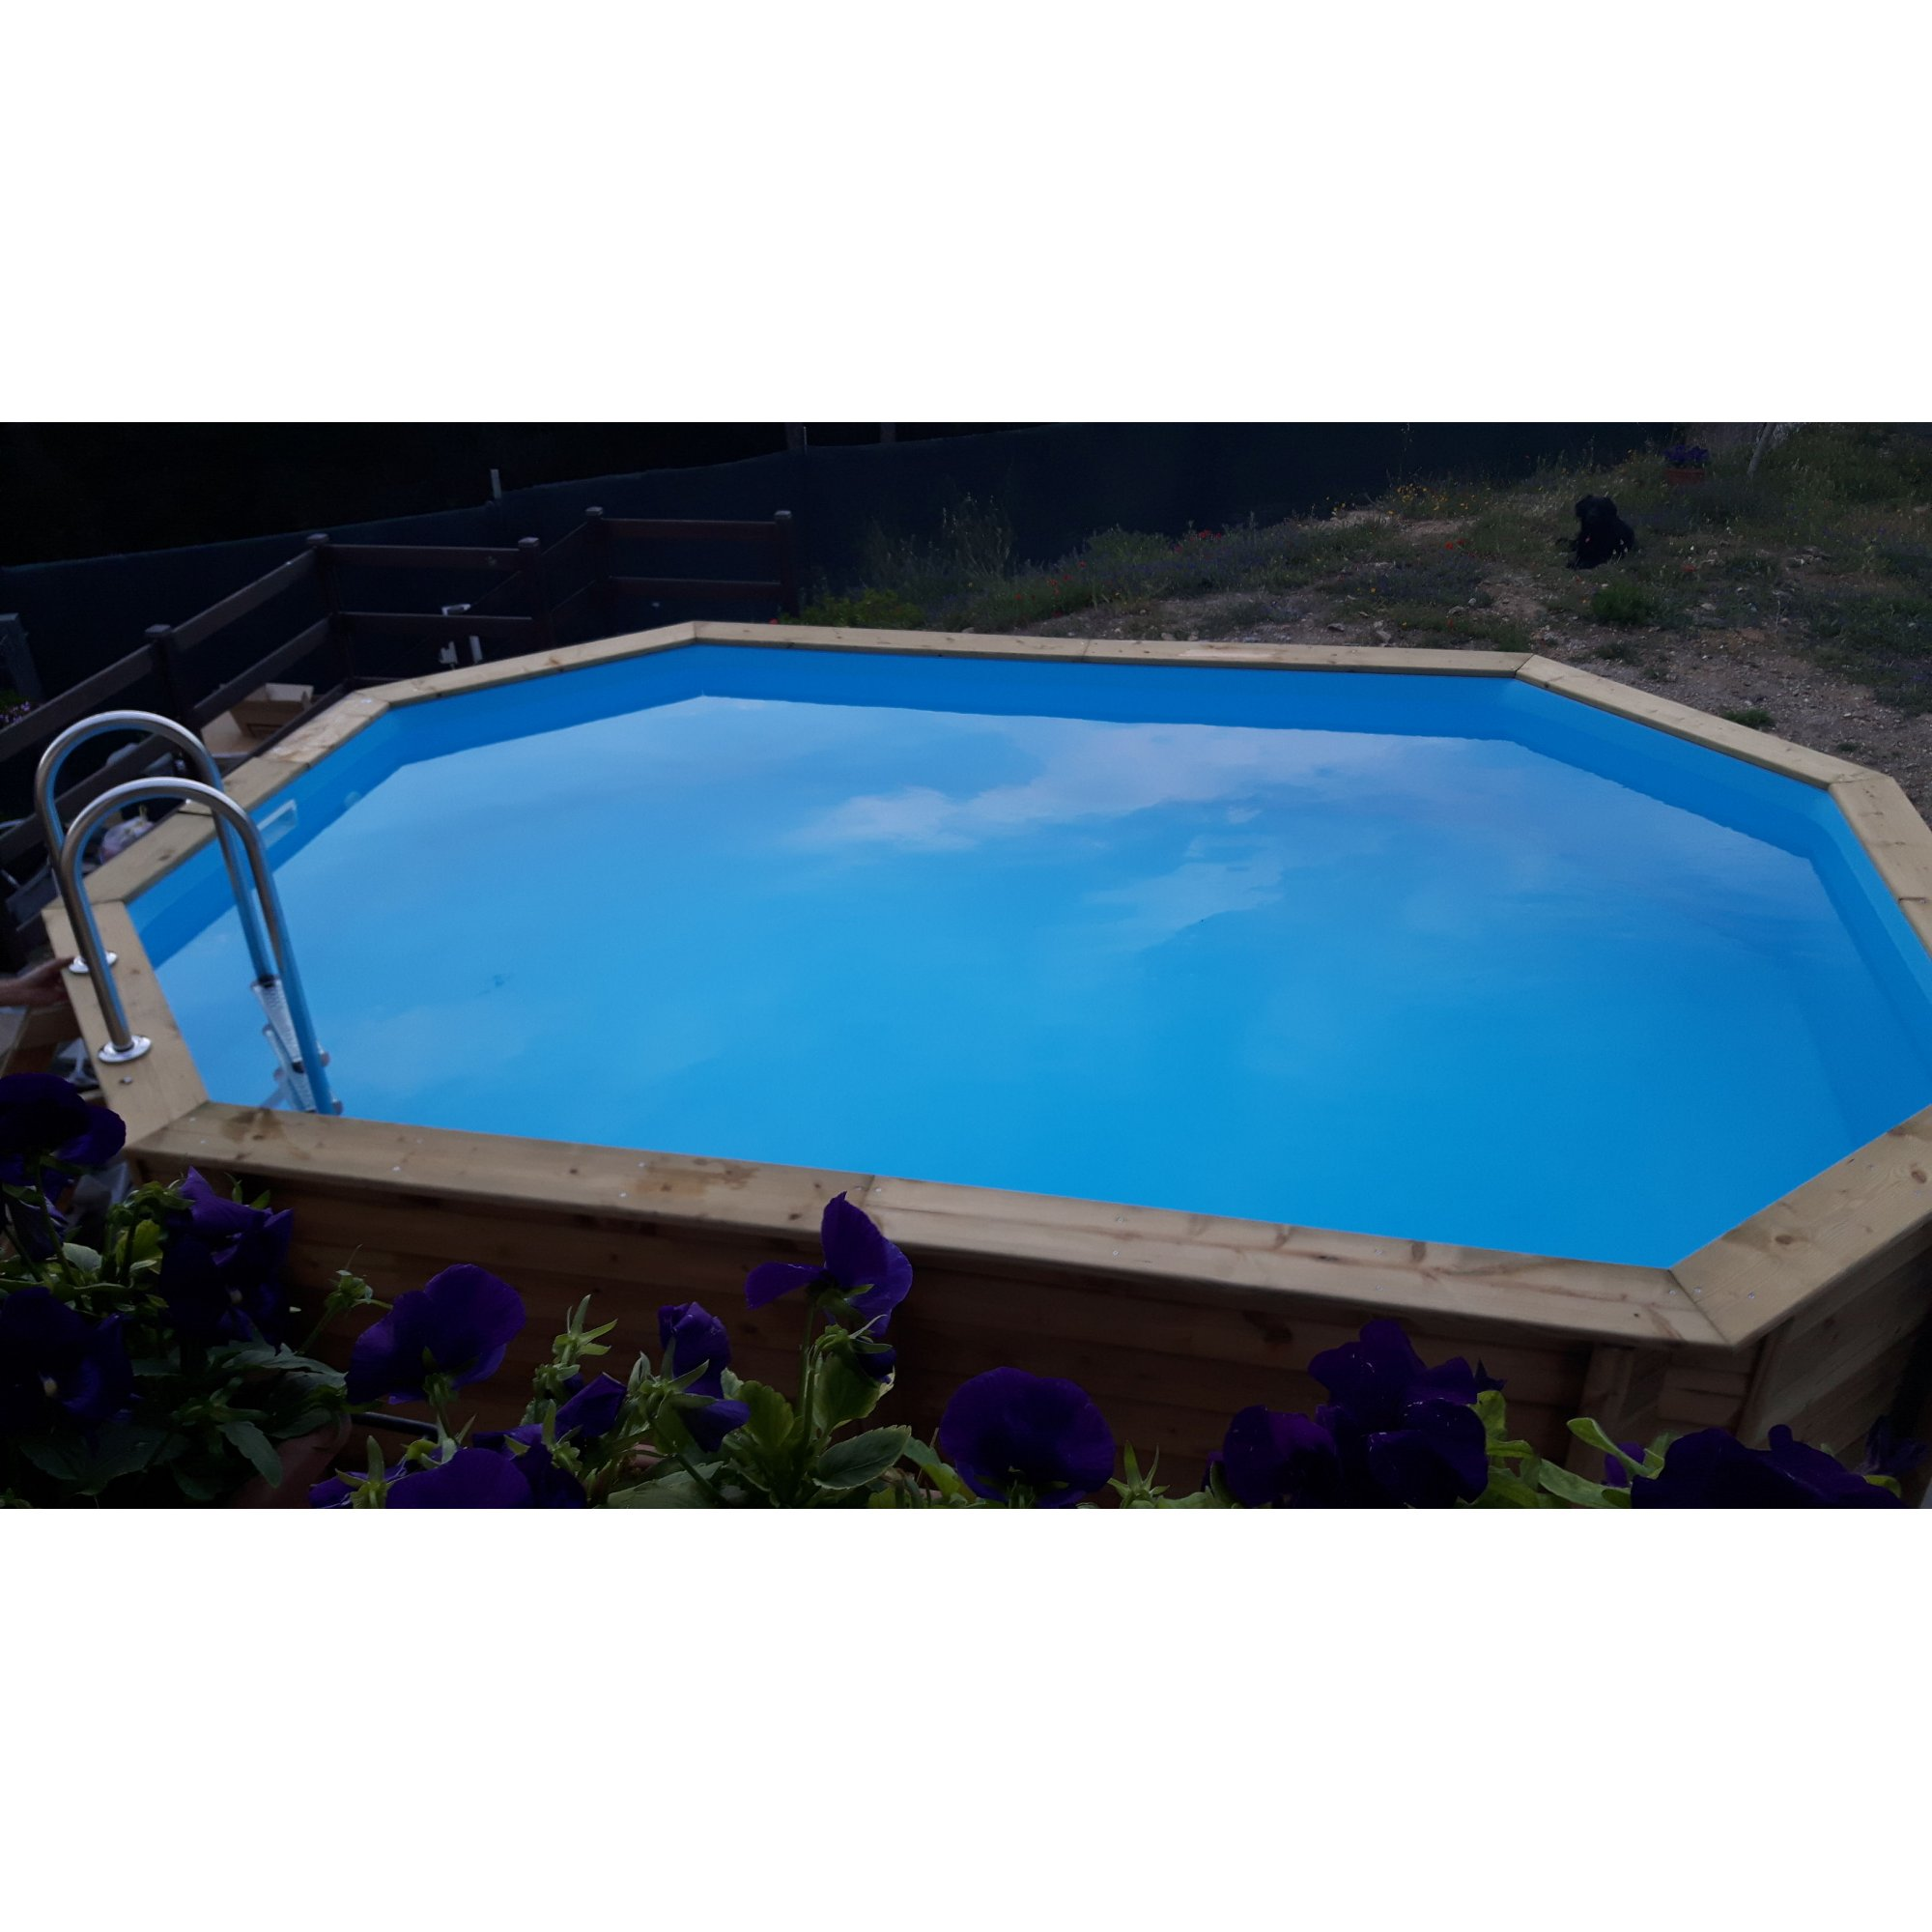 Holzpool tropic aufstellbecken octo 510 for Piscine tropic octo 414